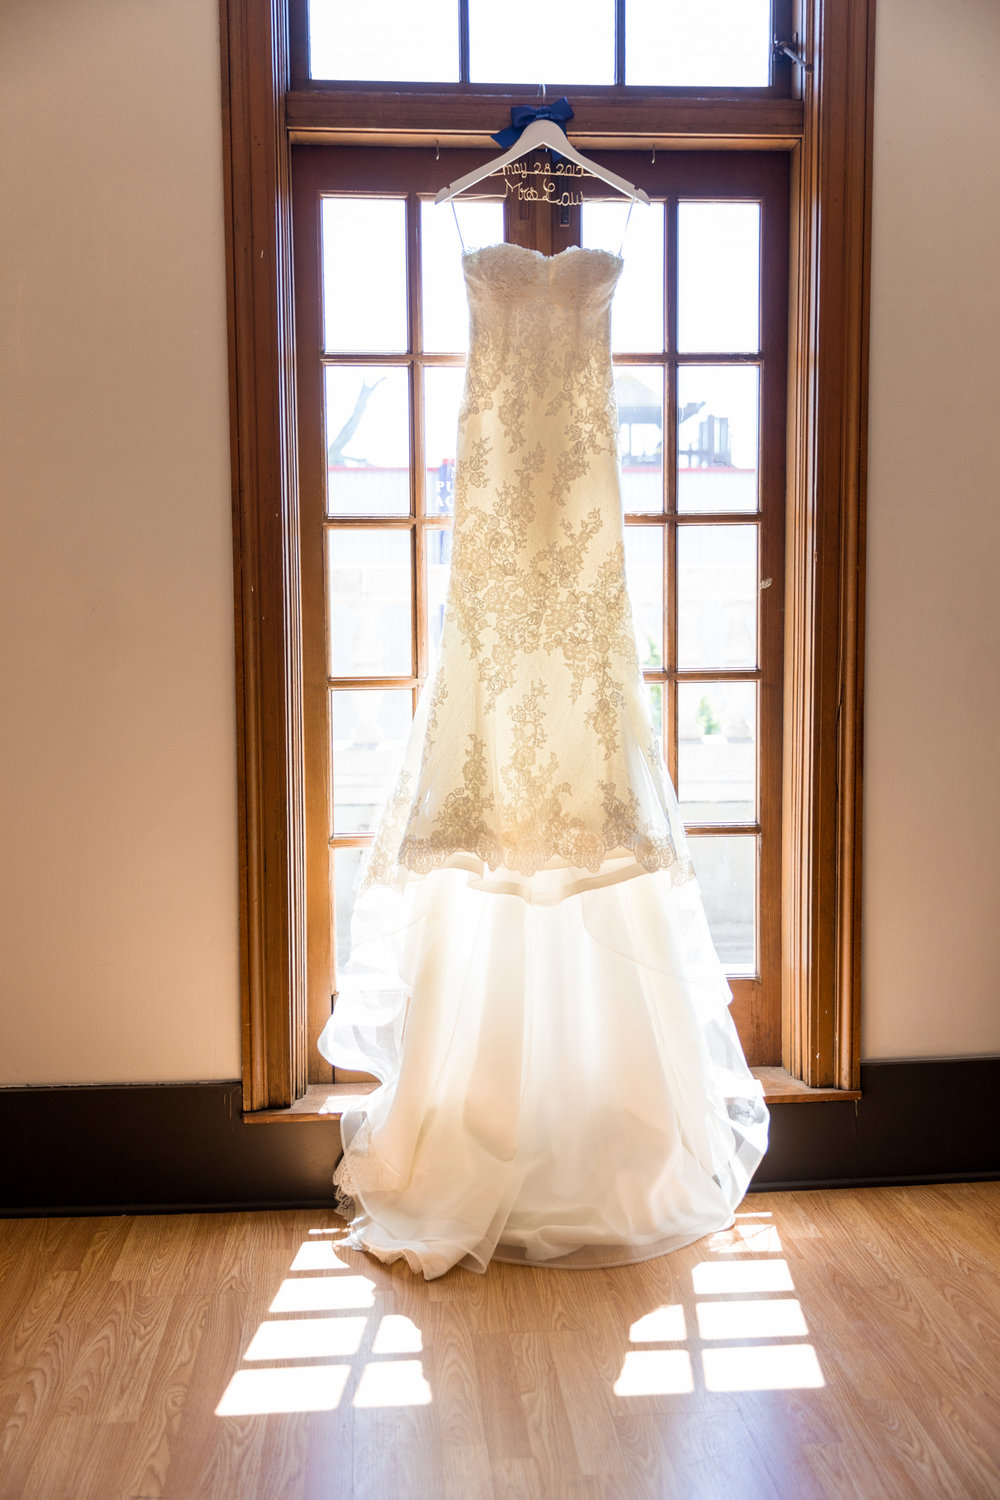 Wedding Dress Details at Monte Cristo Ballroom in Everett